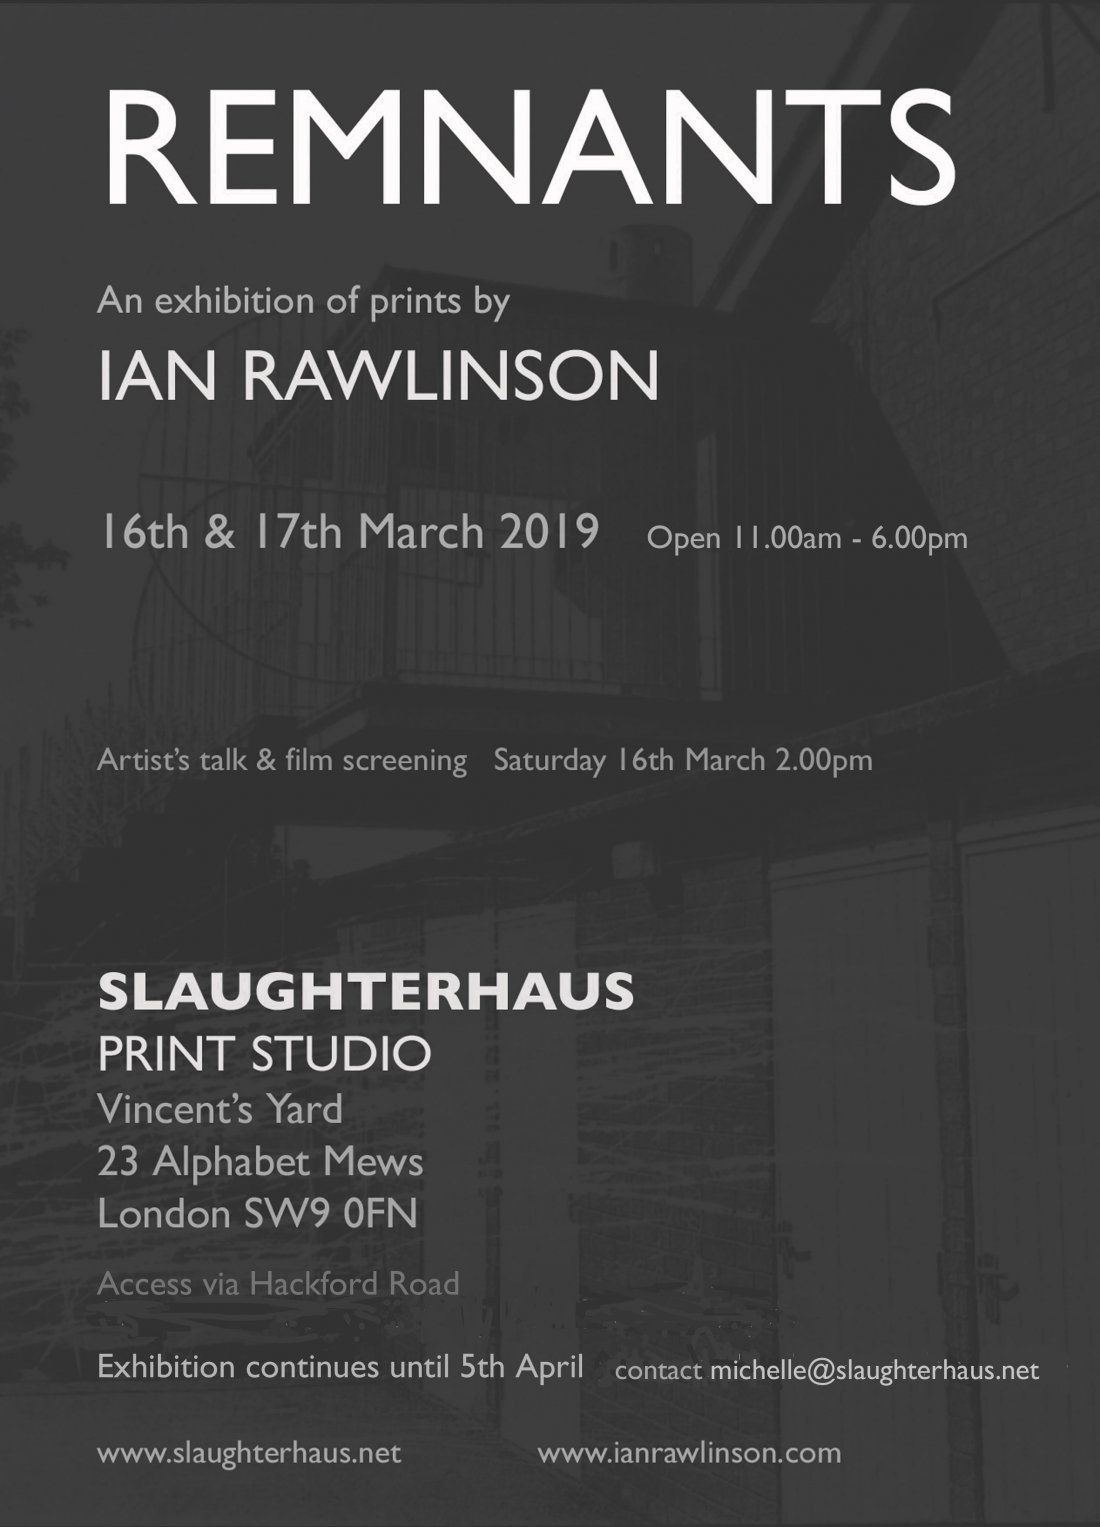 REMNANTS - an exhibition of prints by IAN RAWLINSON